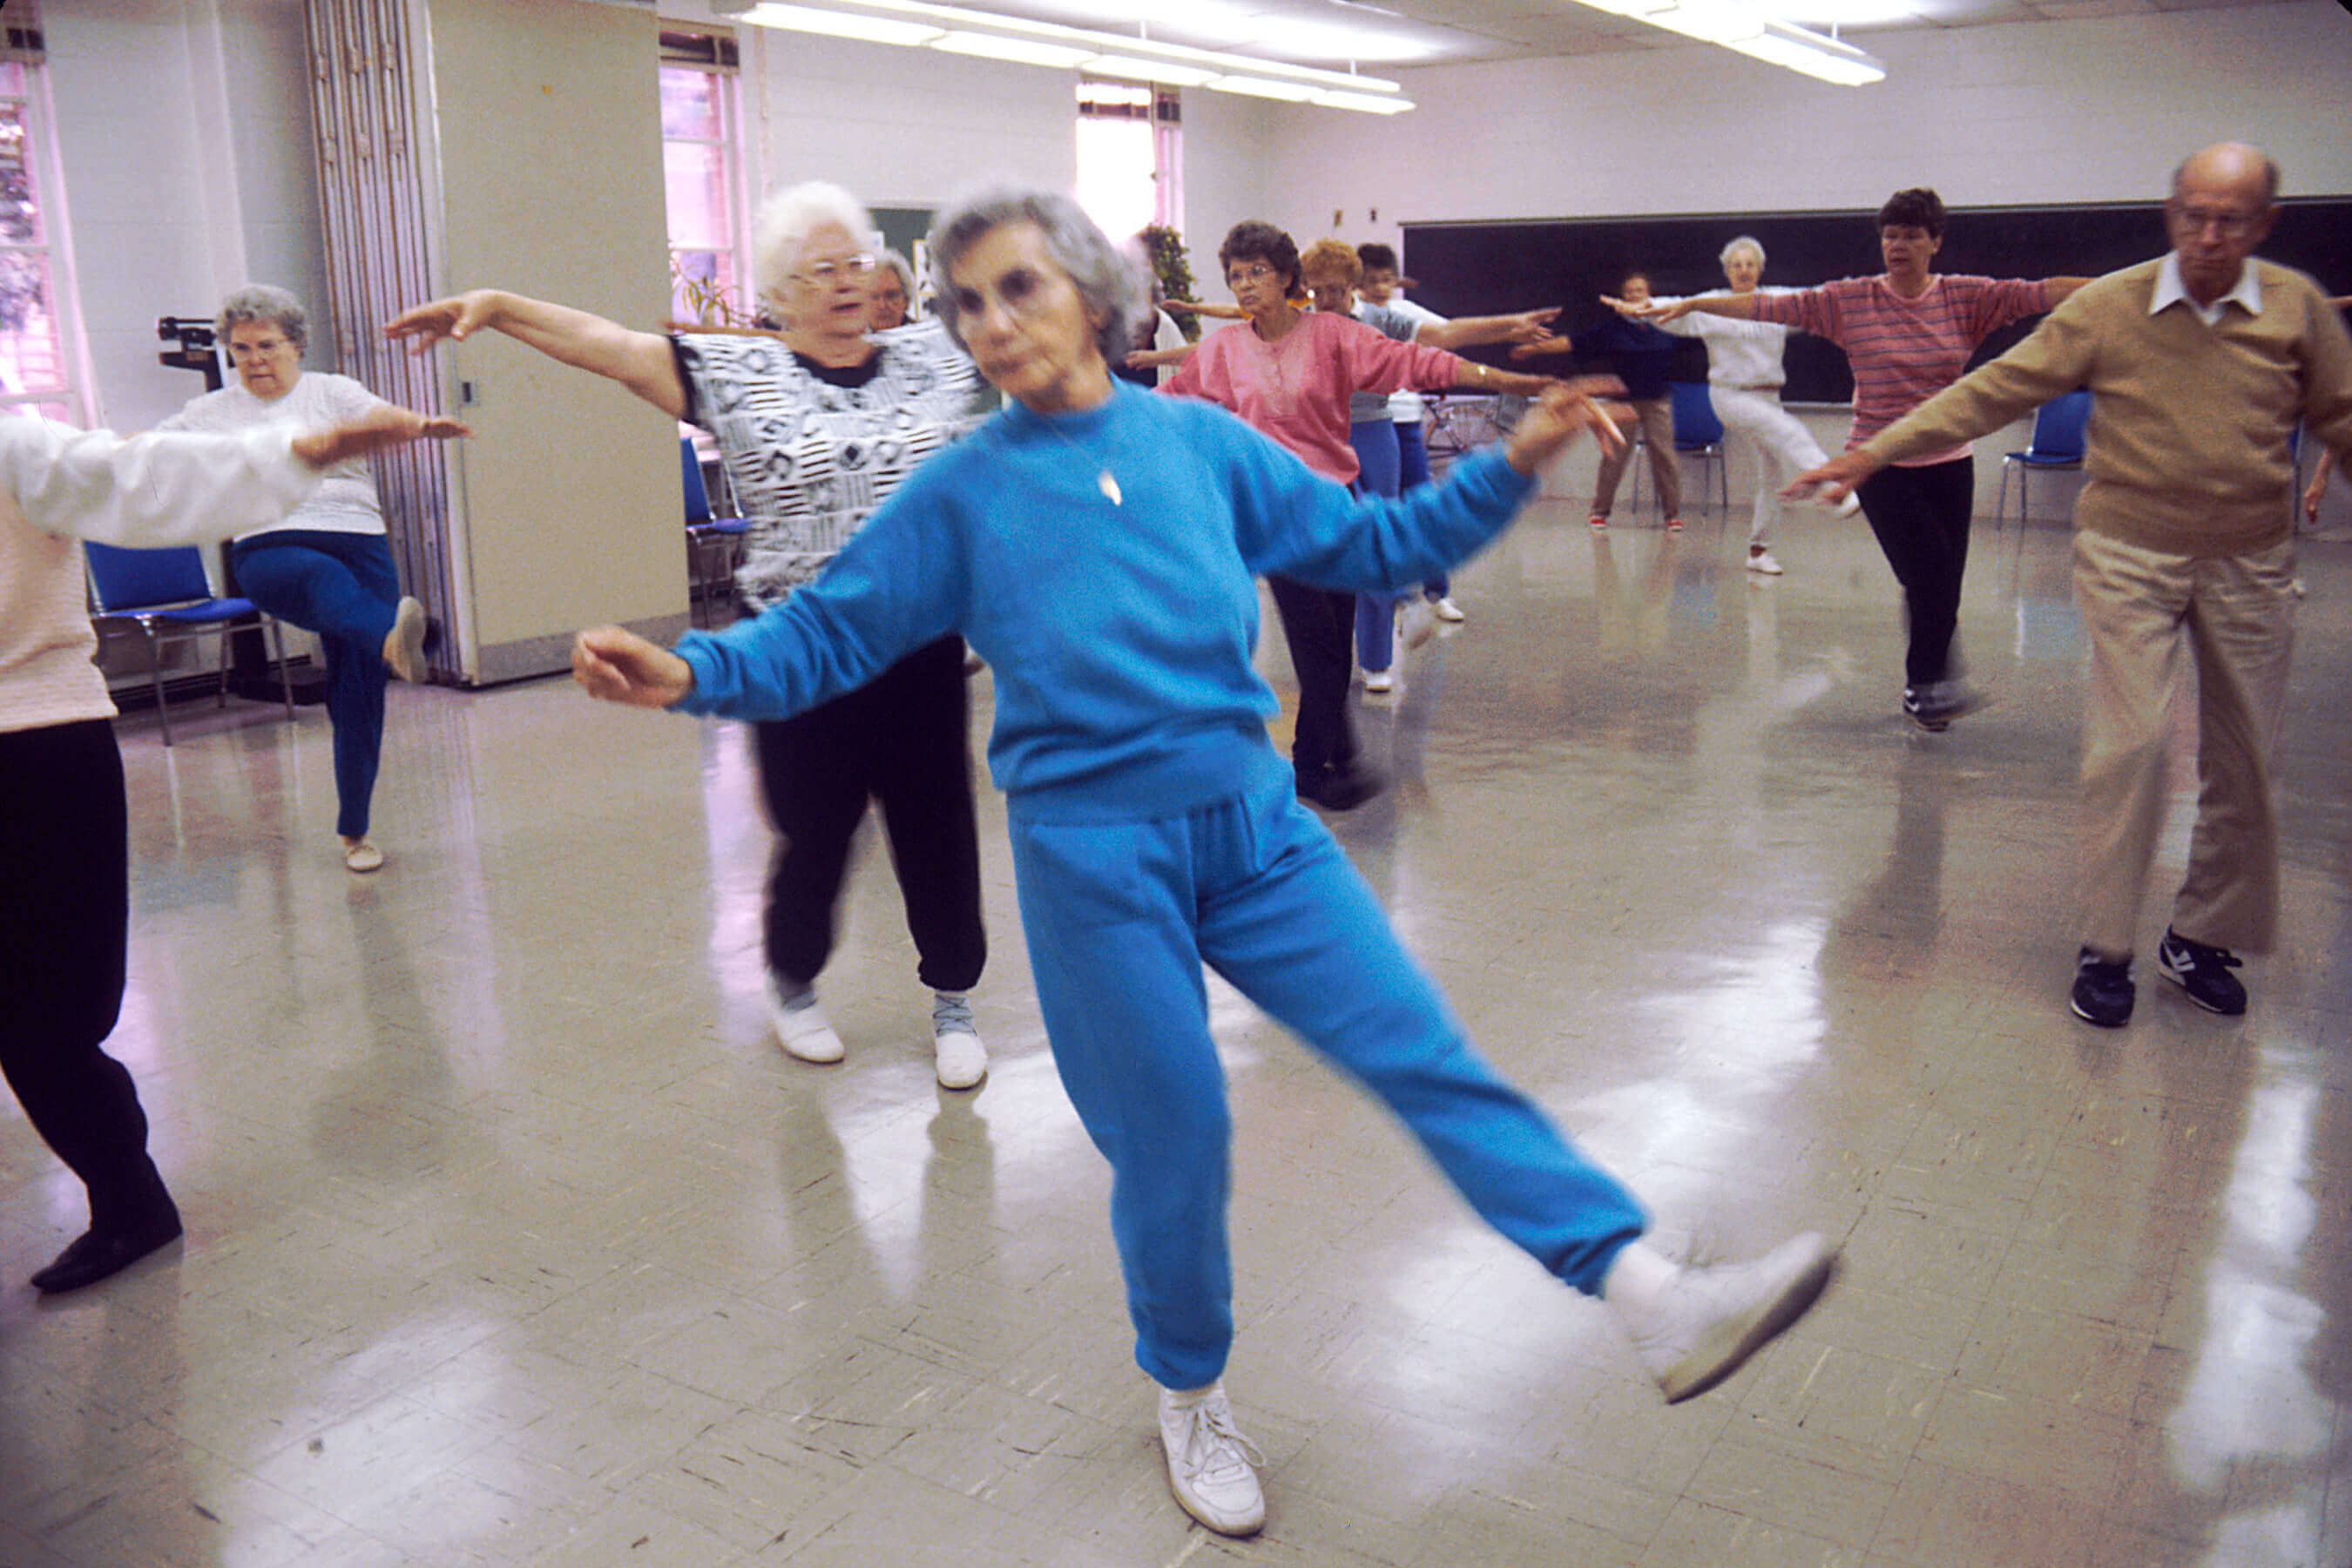 Elderly people exercising to music